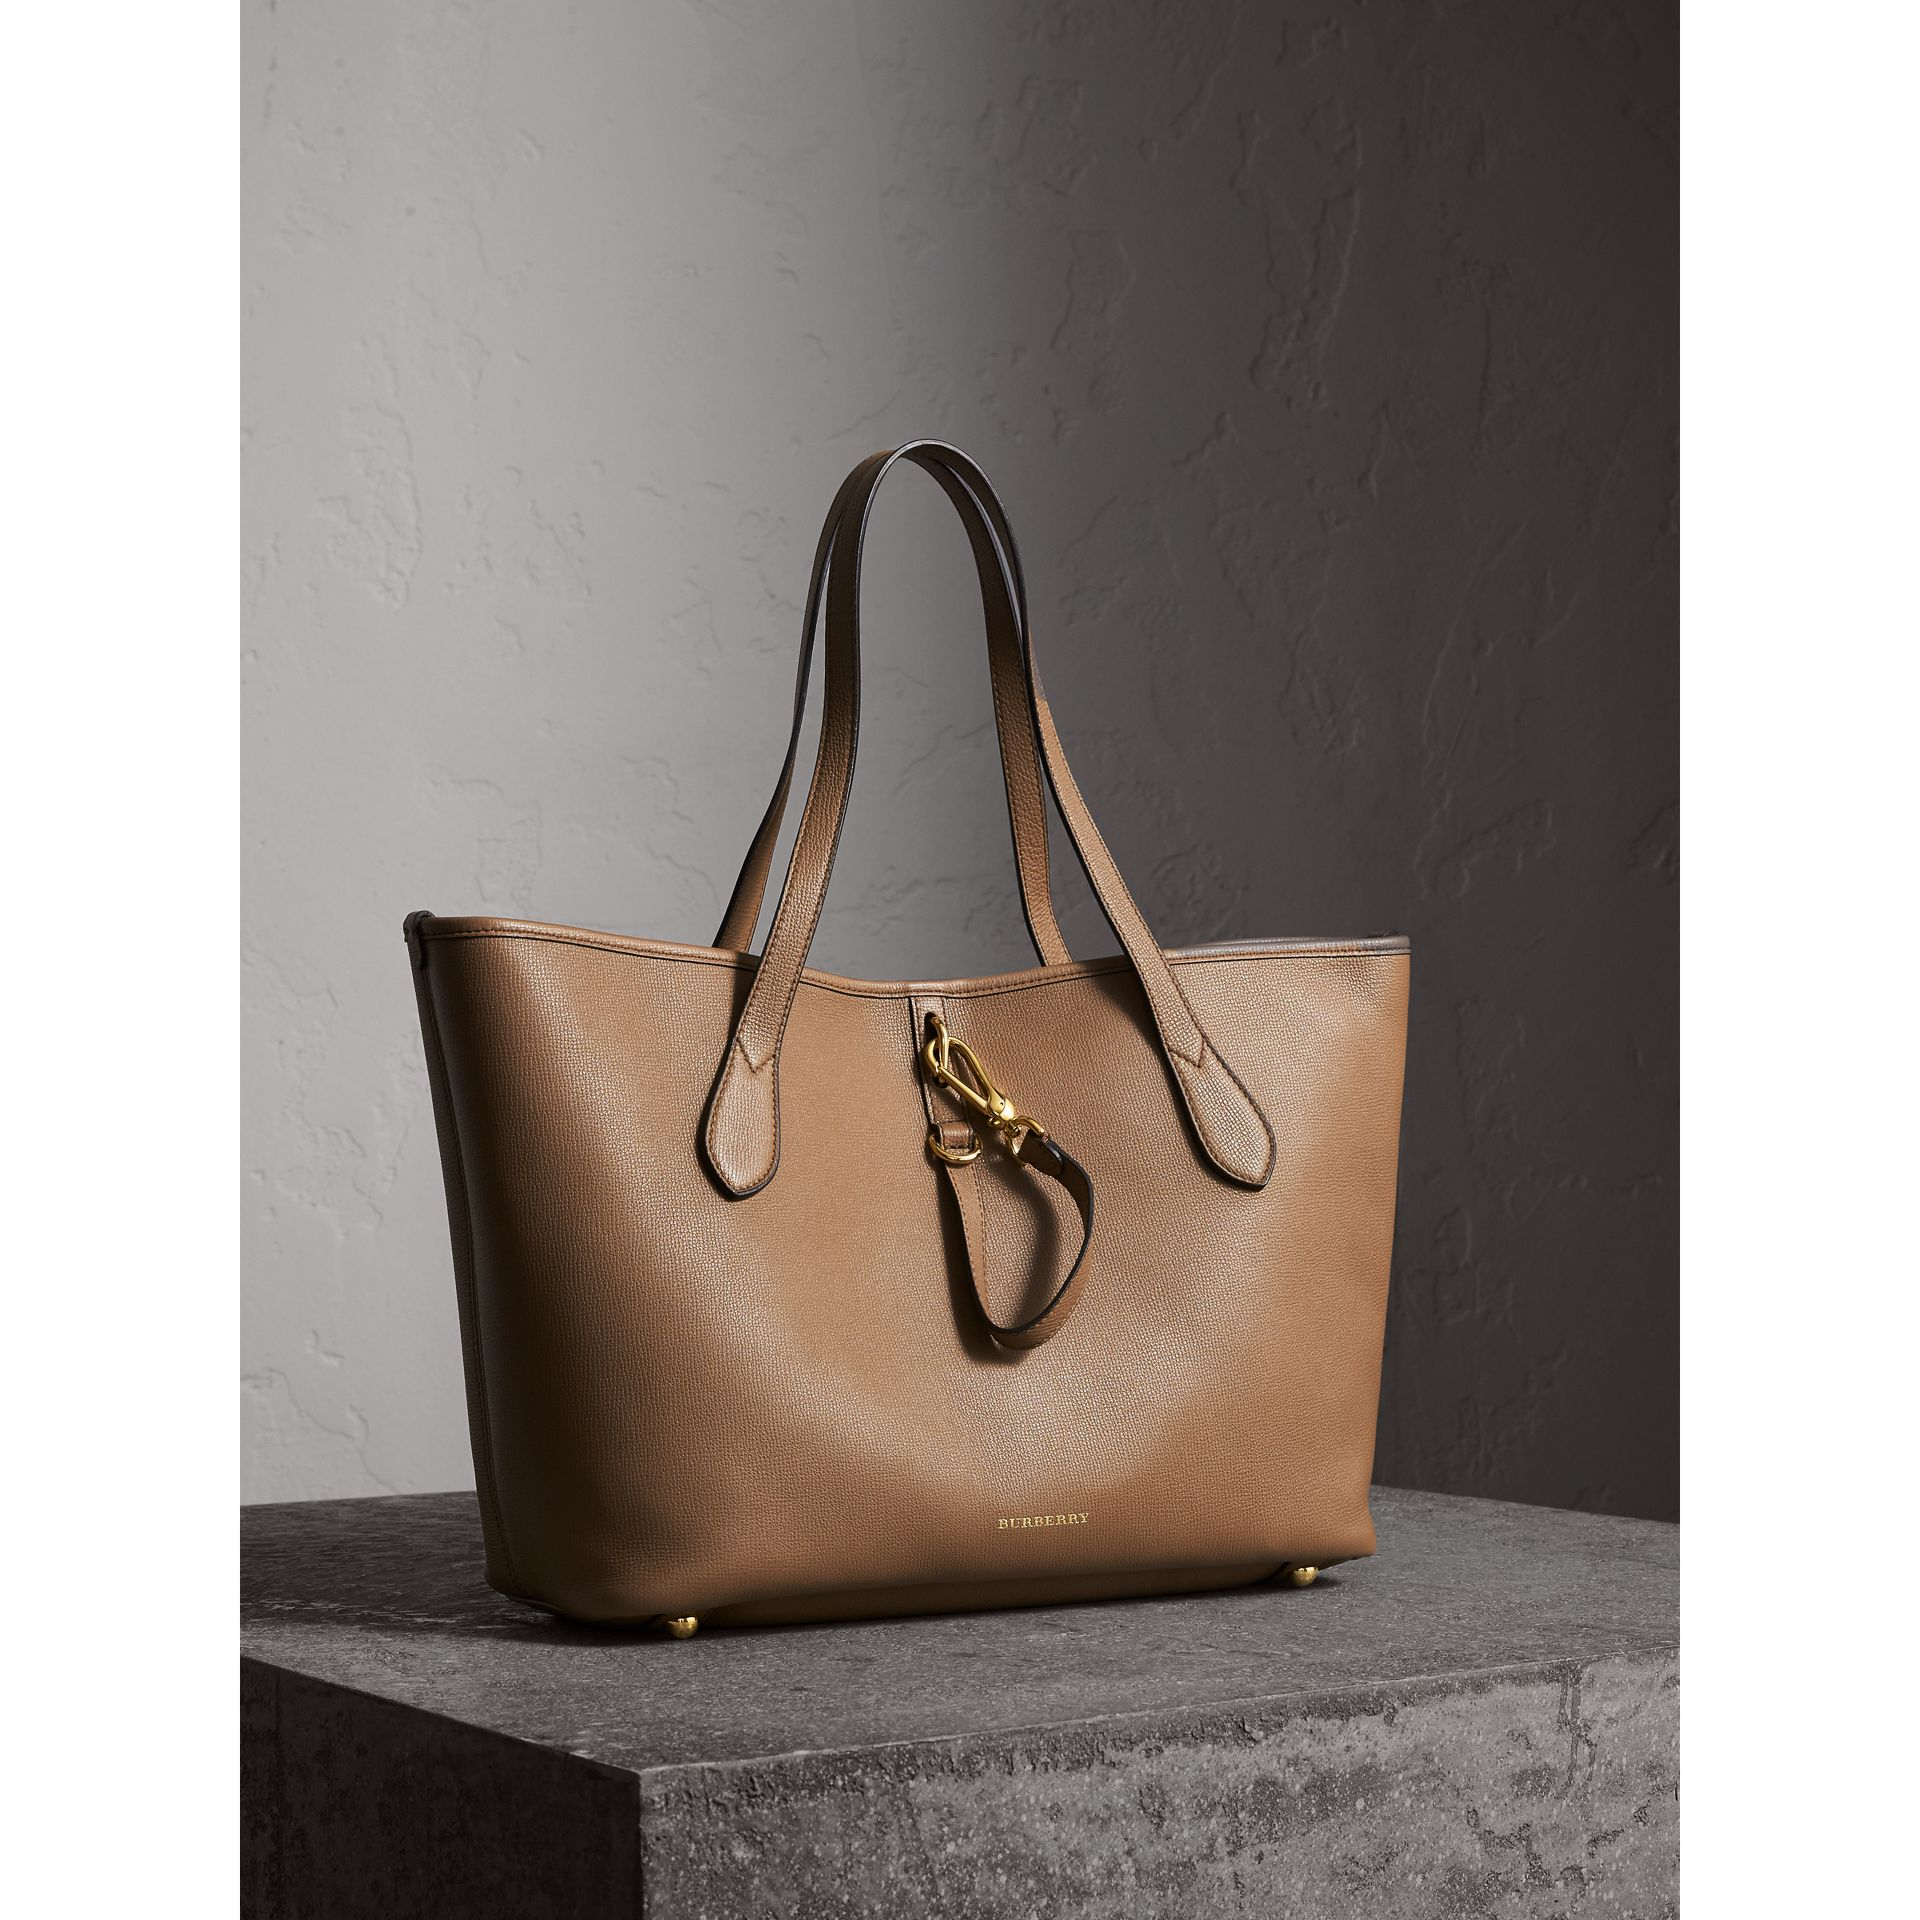 Medium Grainy Leather Tote Bag in Dark Sand - Women | Burberry Australia - gallery image 7